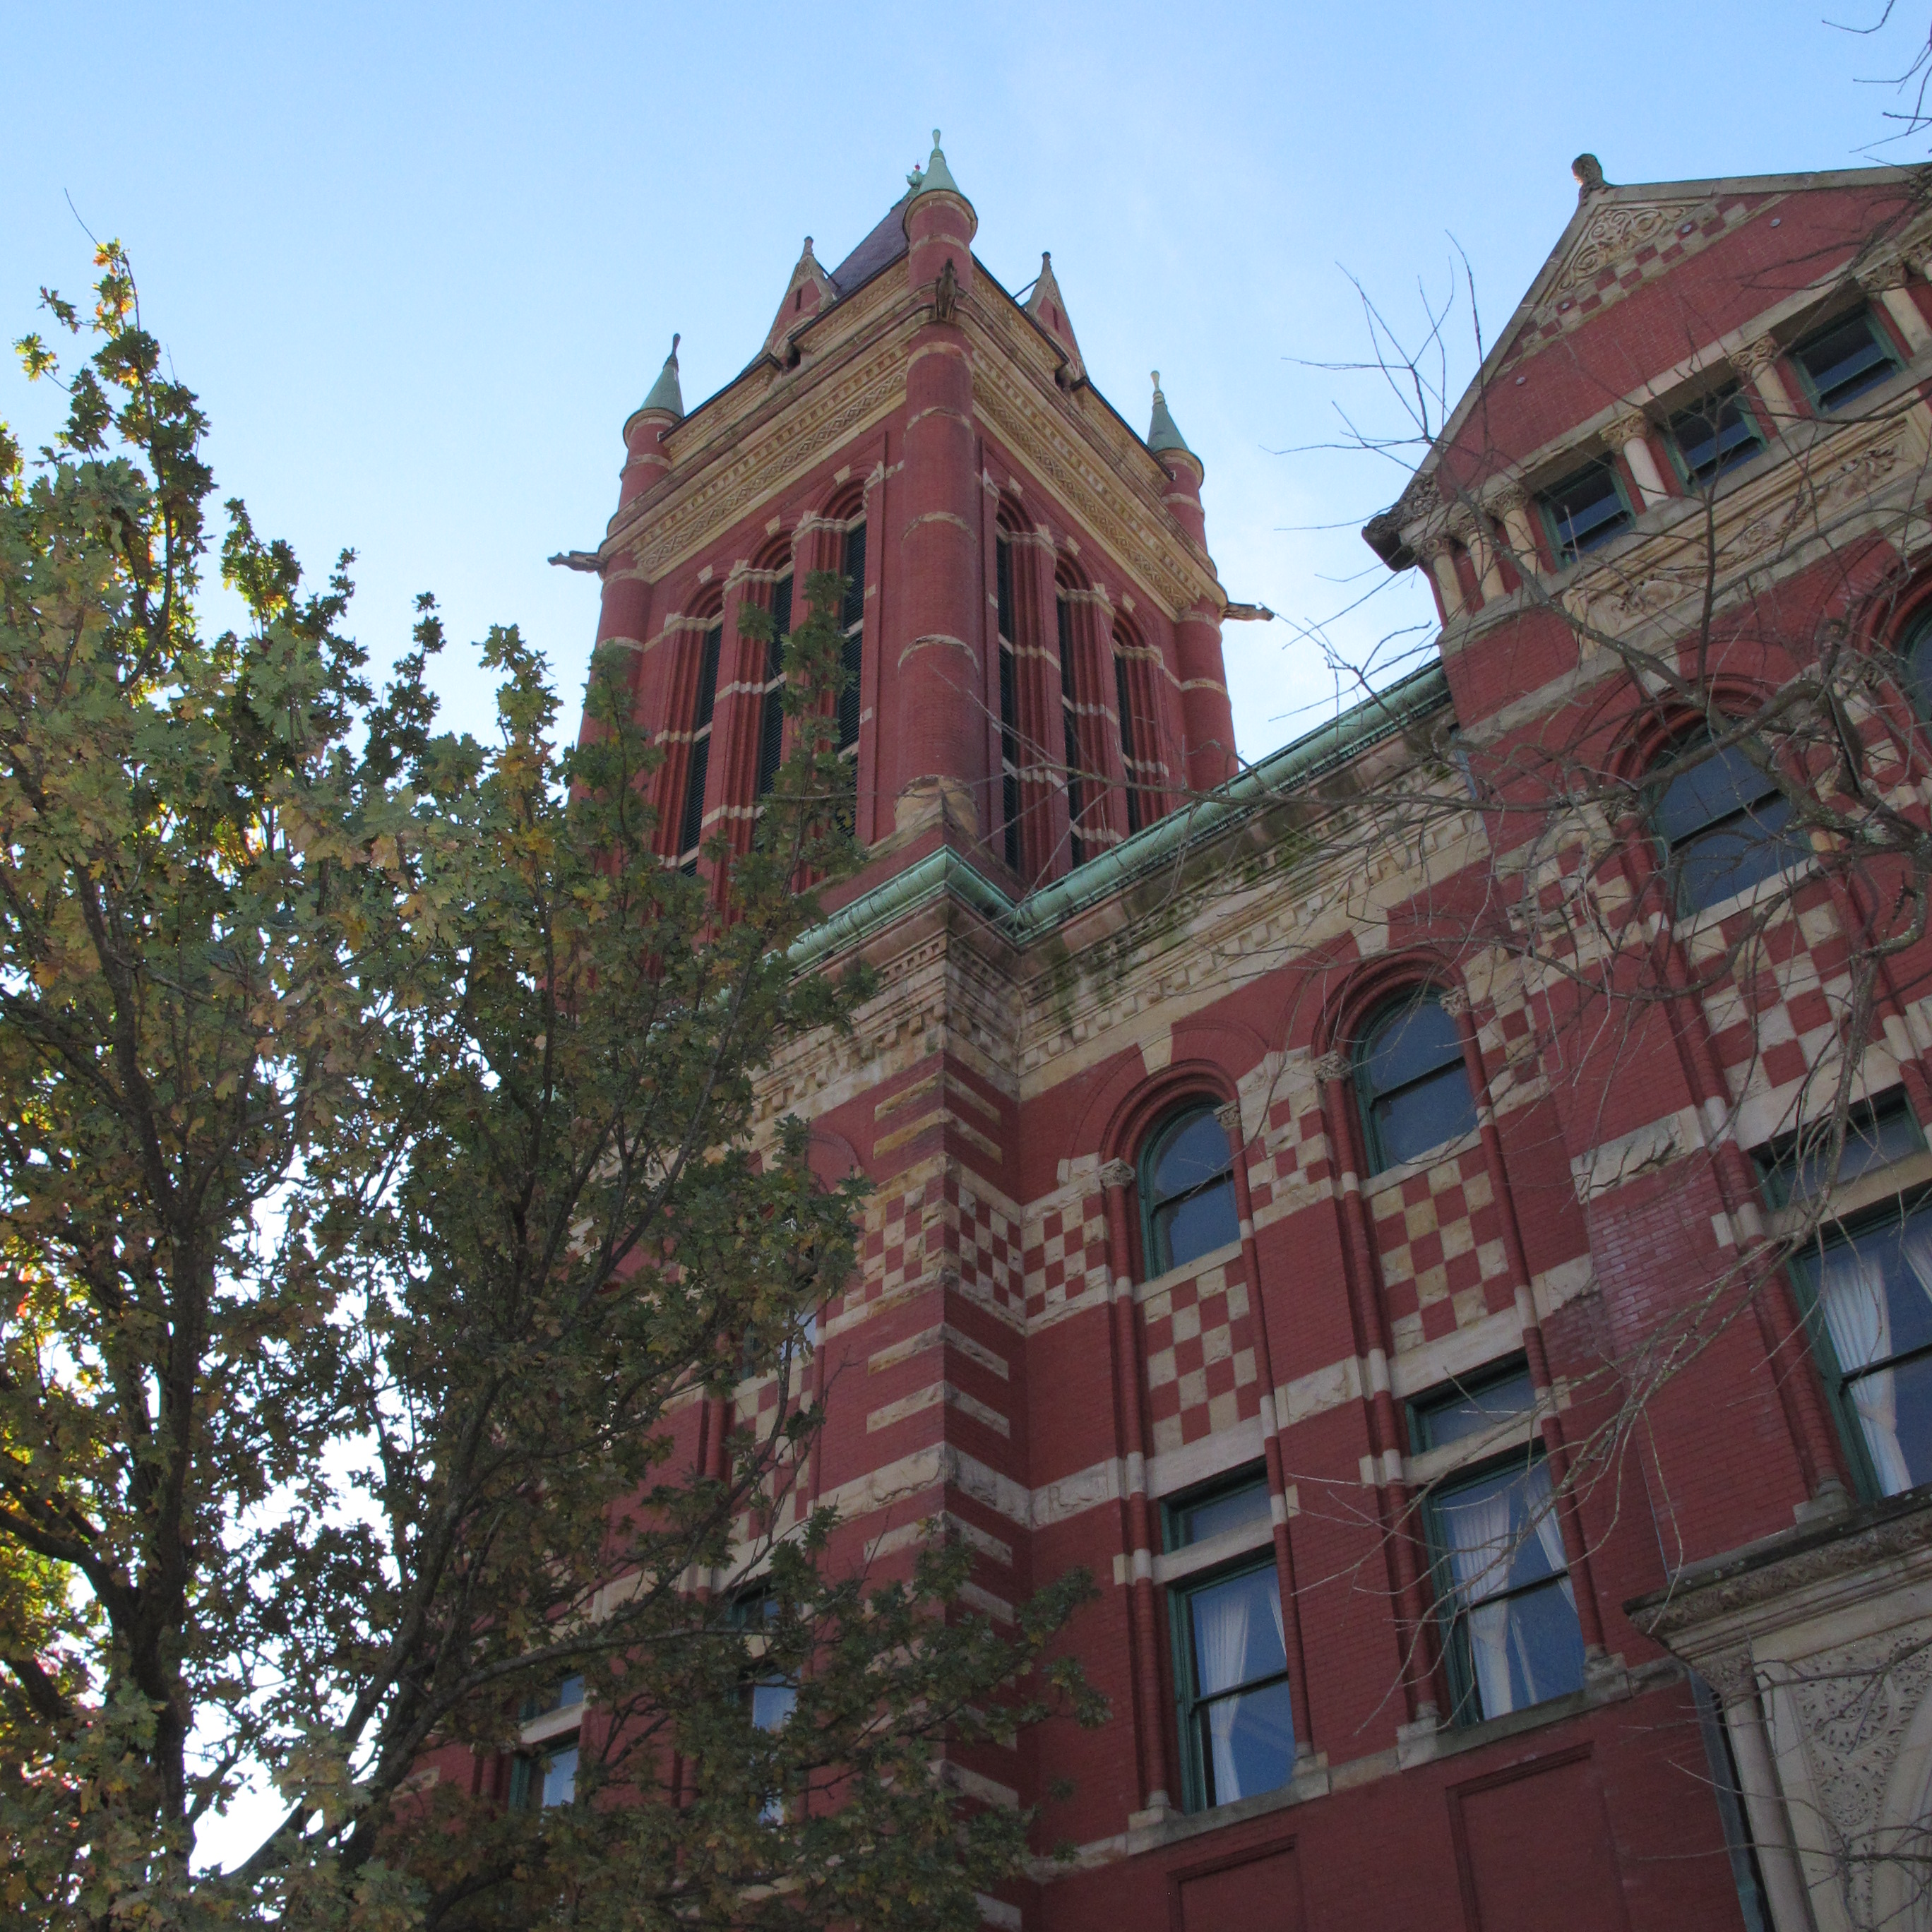 The tower of Allegany County Courthouse